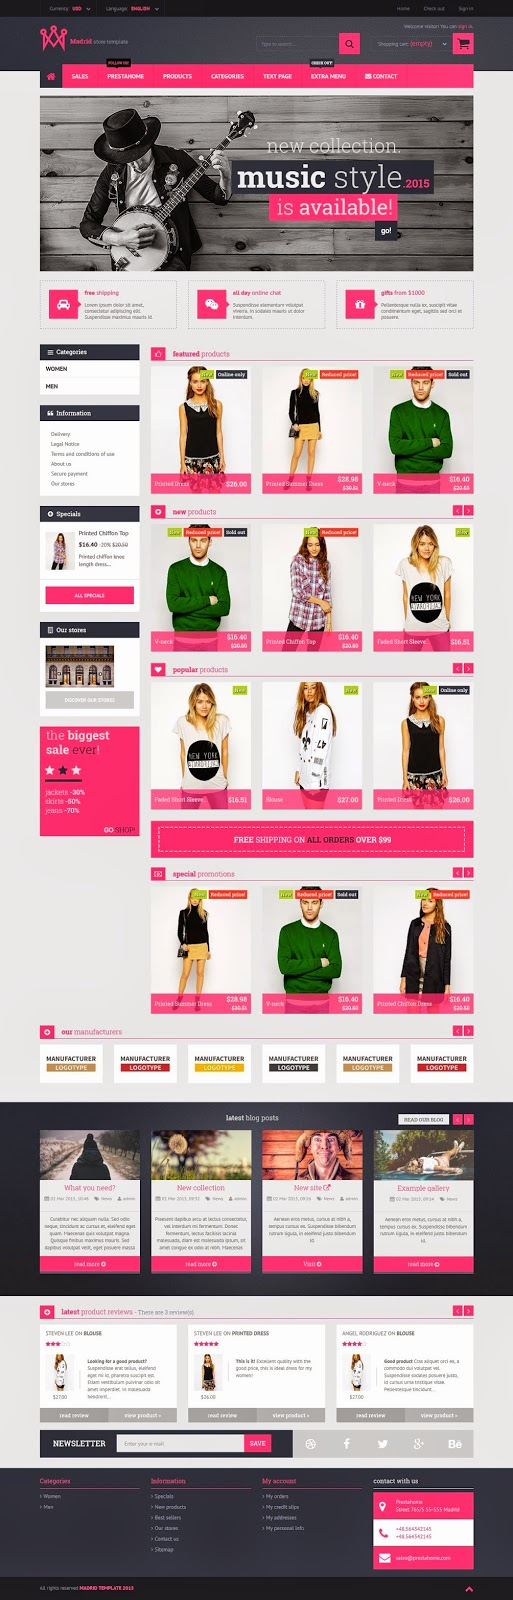 Best Responsive Prestashop Theme 2015